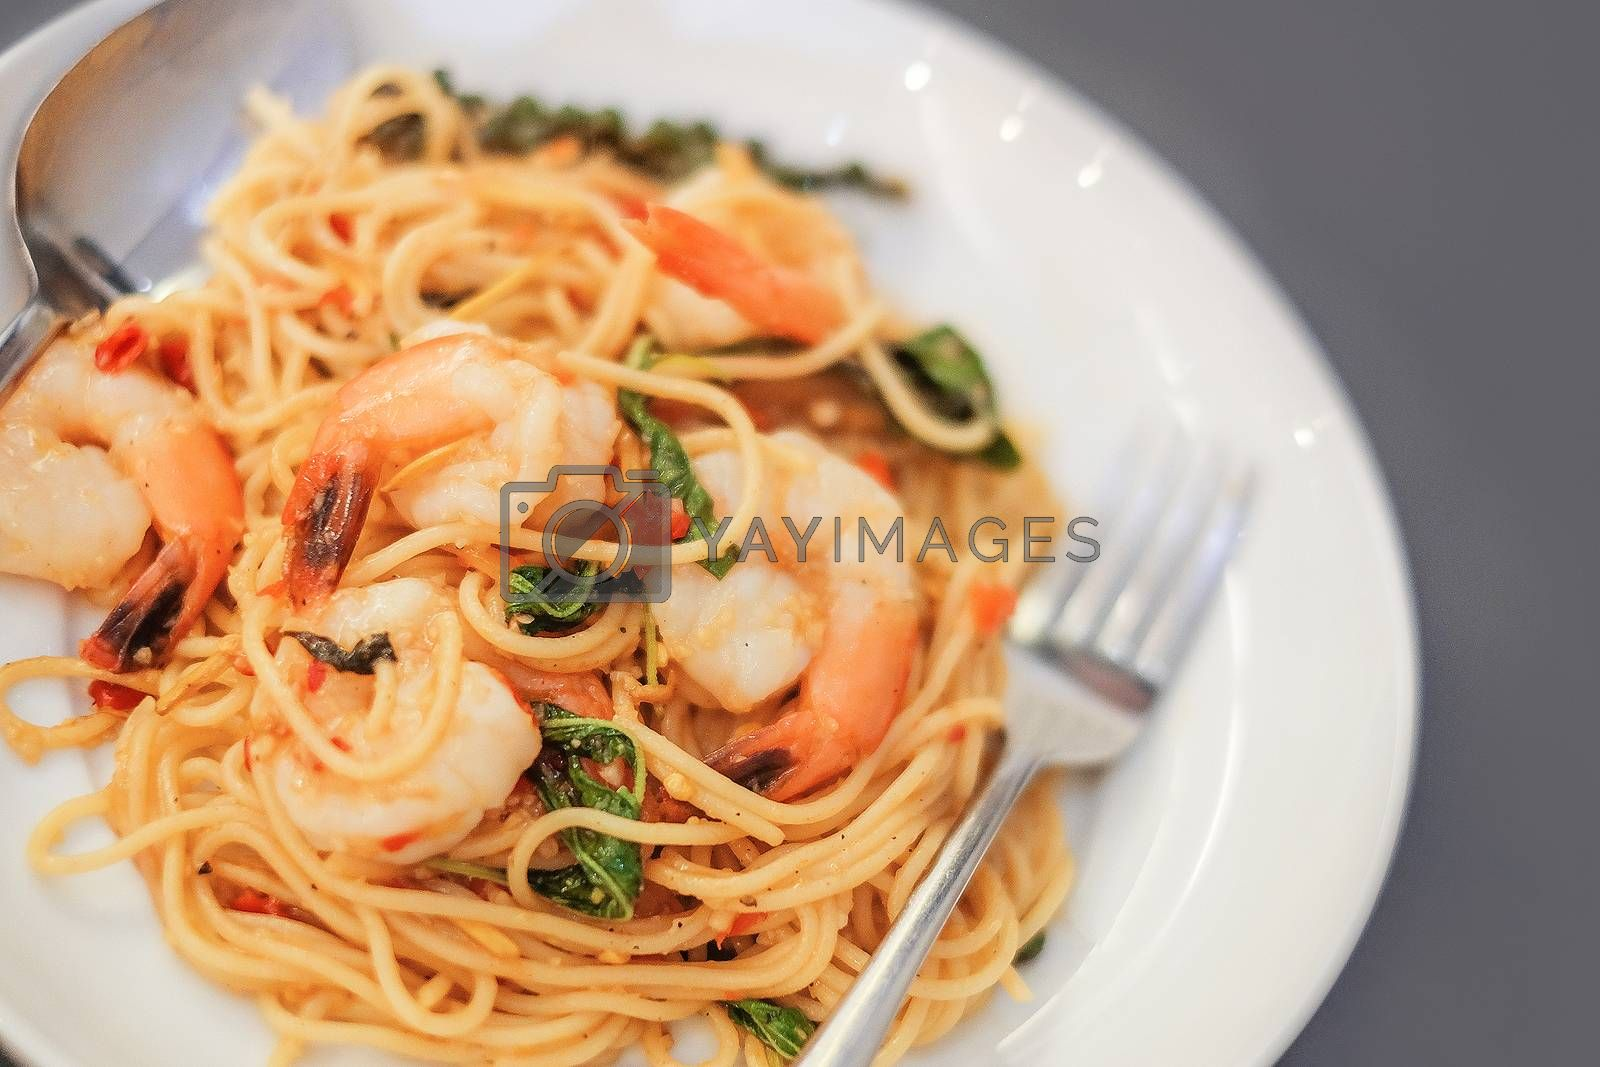 Spaghetti with seafood on gray background